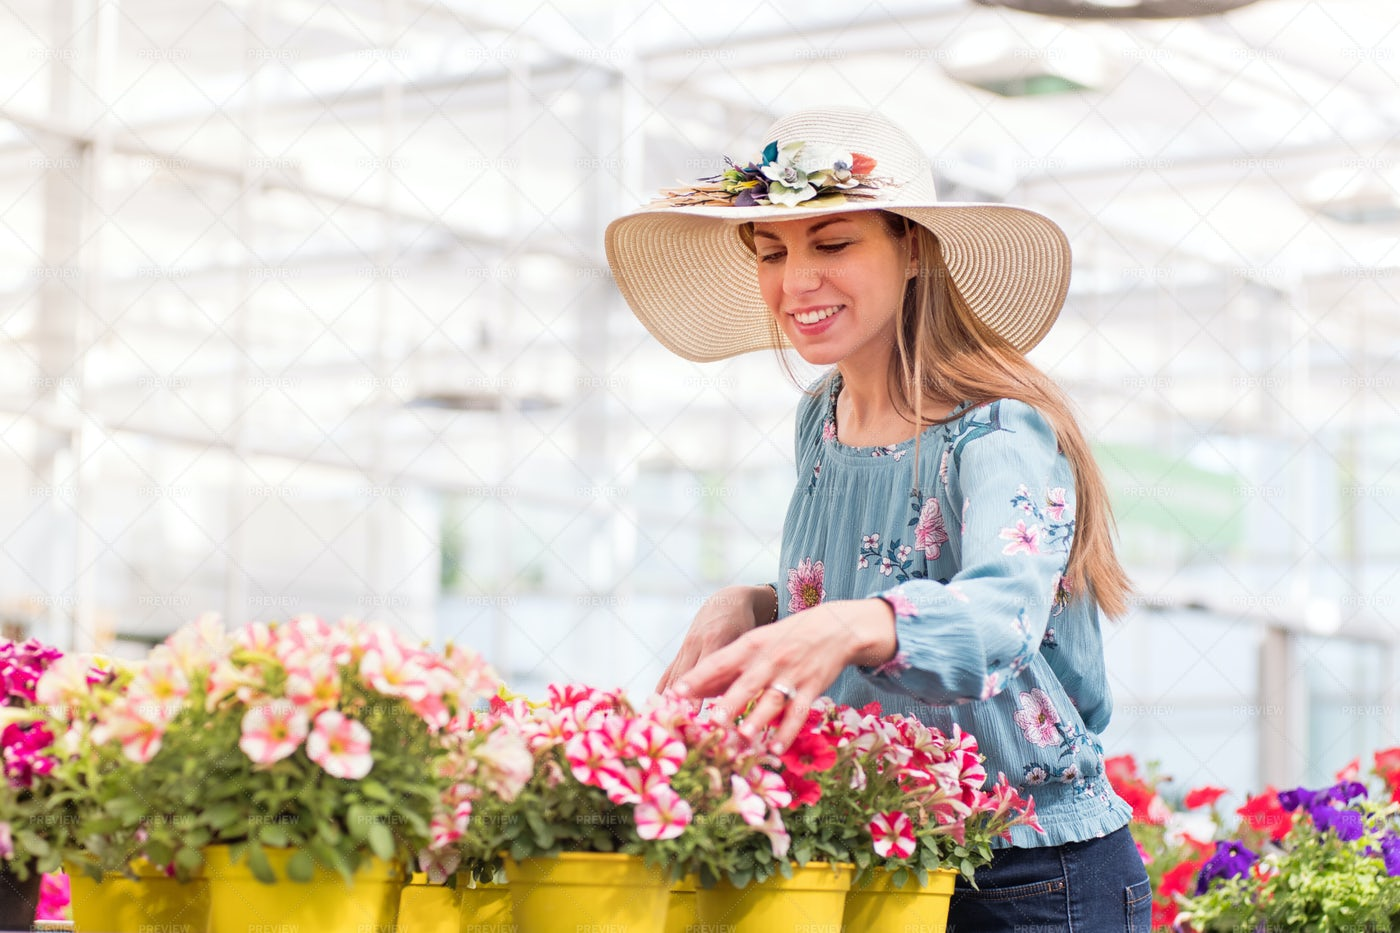 Young Woman Buying Plants: Stock Photos